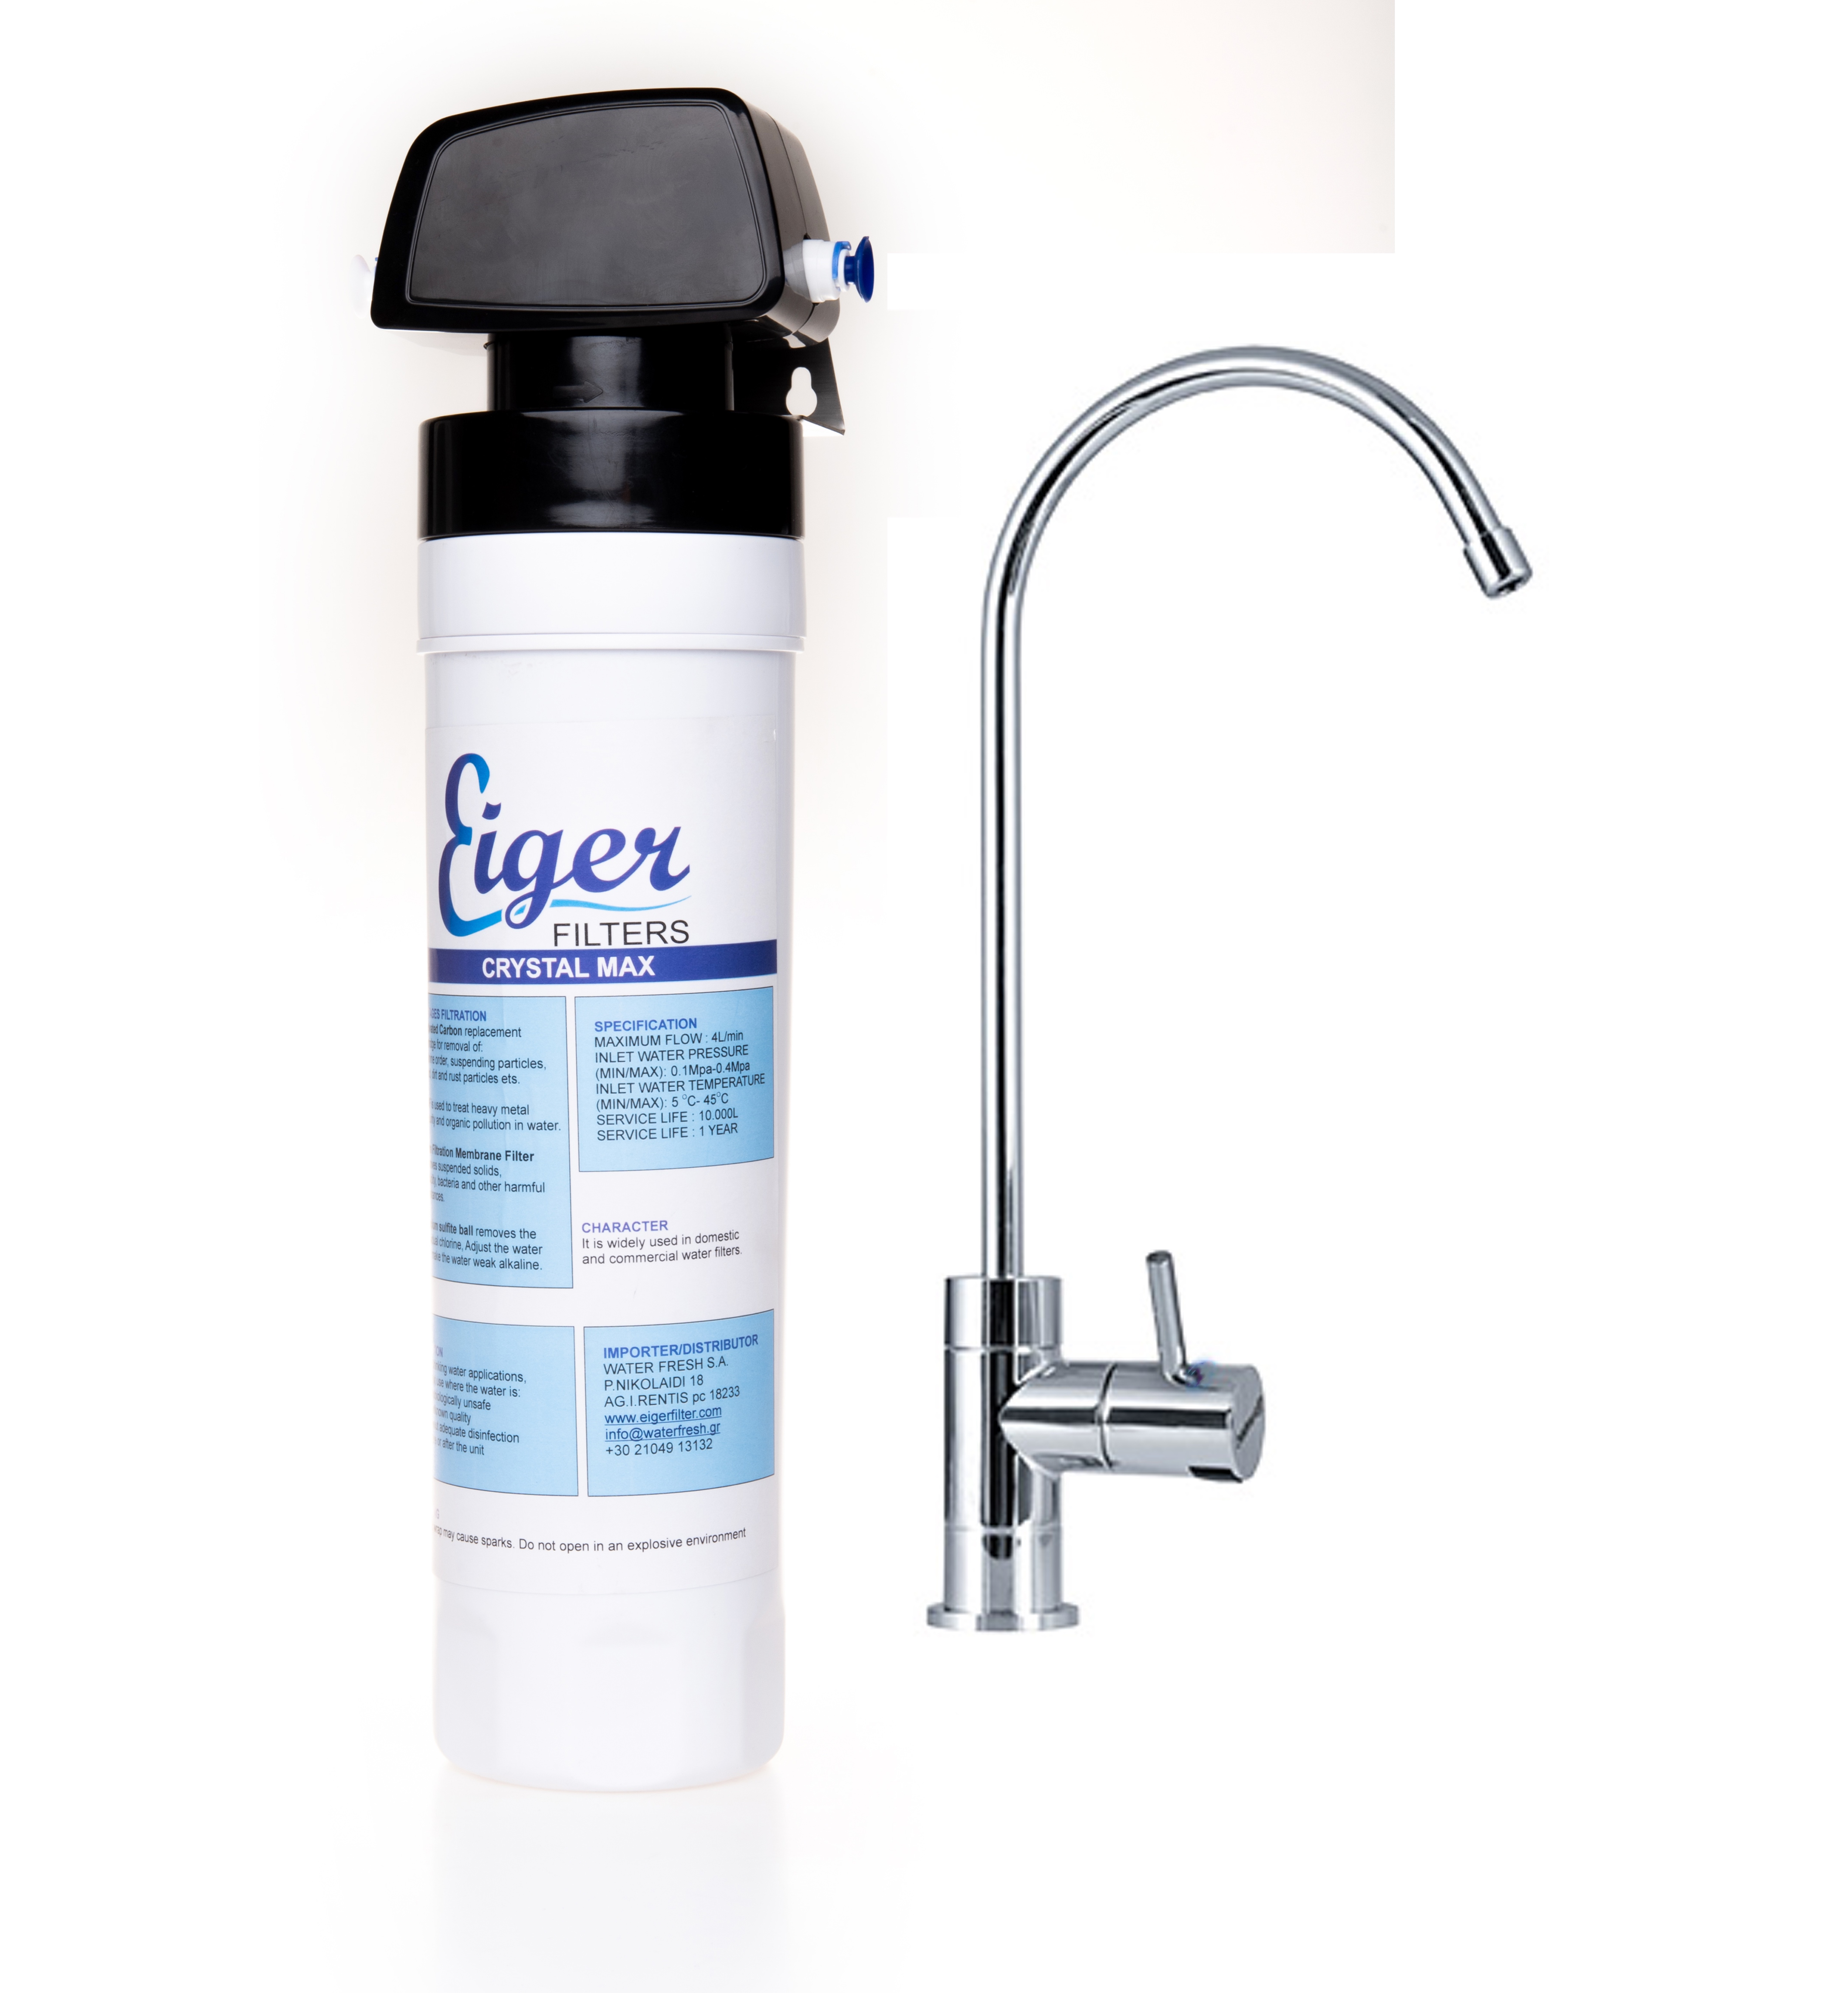 Eiger Countertop Water Filter for VOC